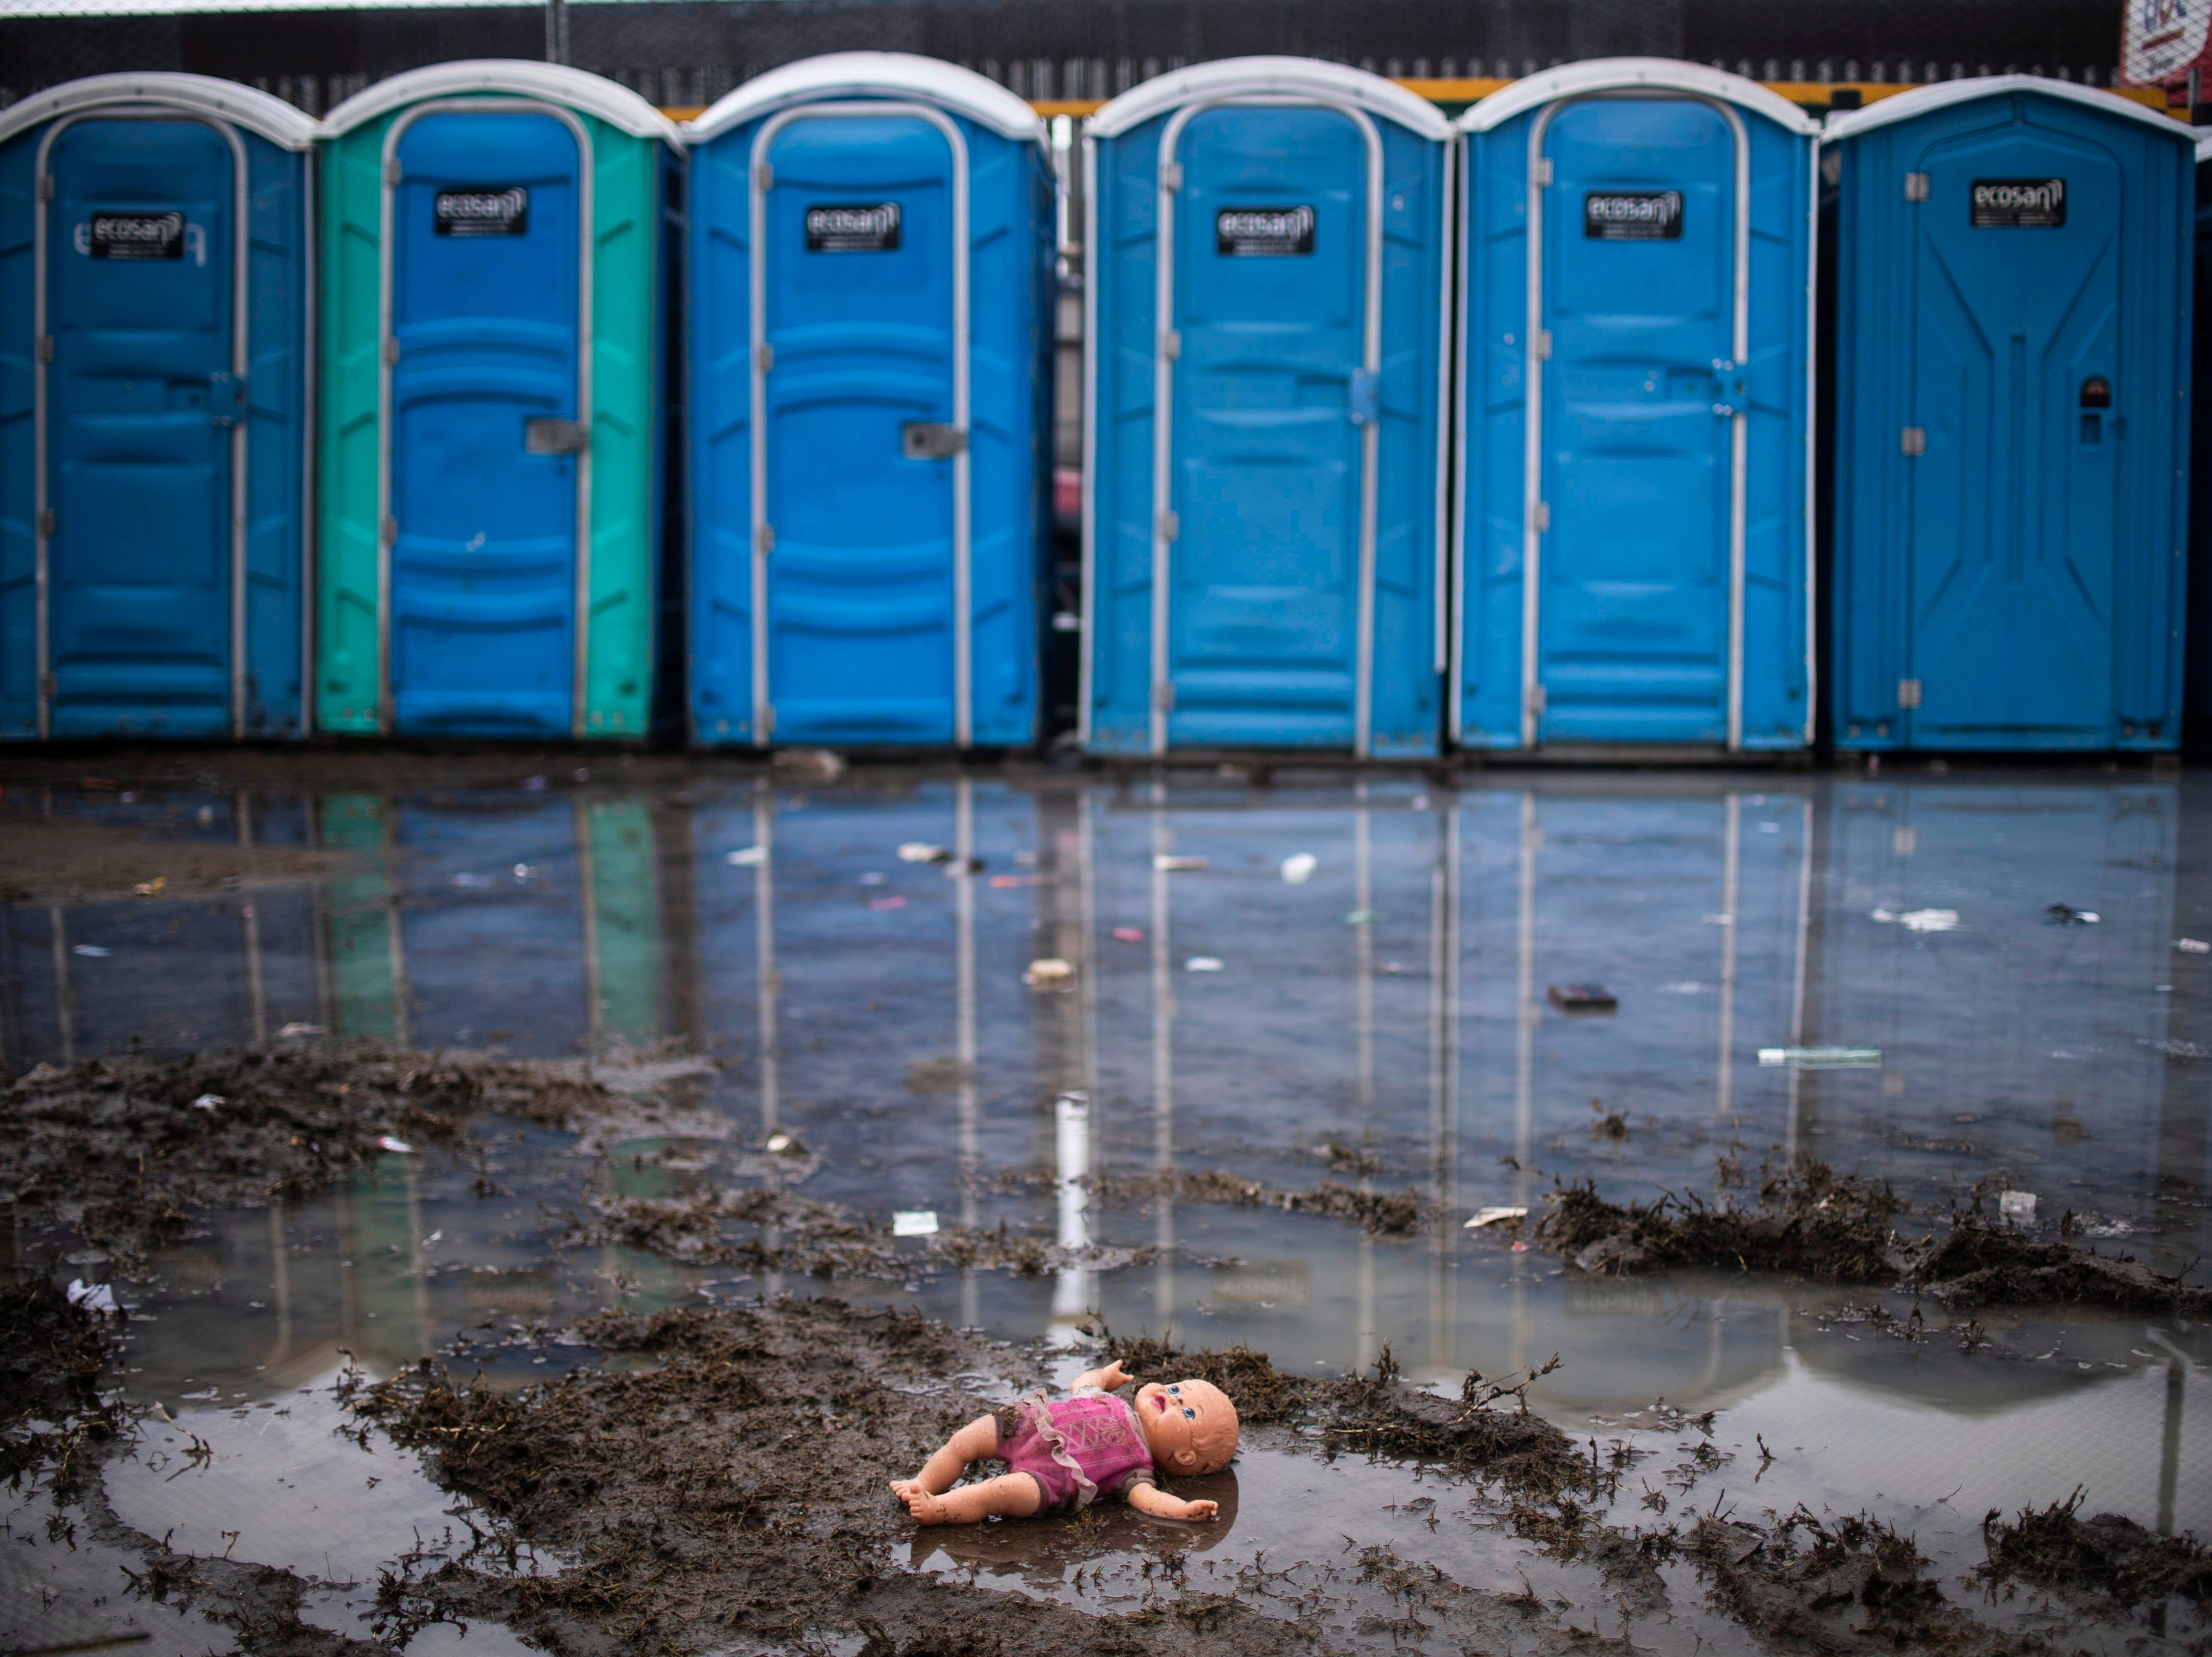 A doll is seen next to chemical toilets at a temporary shelter where Central American migrants trying to reach the US are staying in Tijuana, Baja California State, Mexico, in the border with the US, on Nov. 29, 2018.